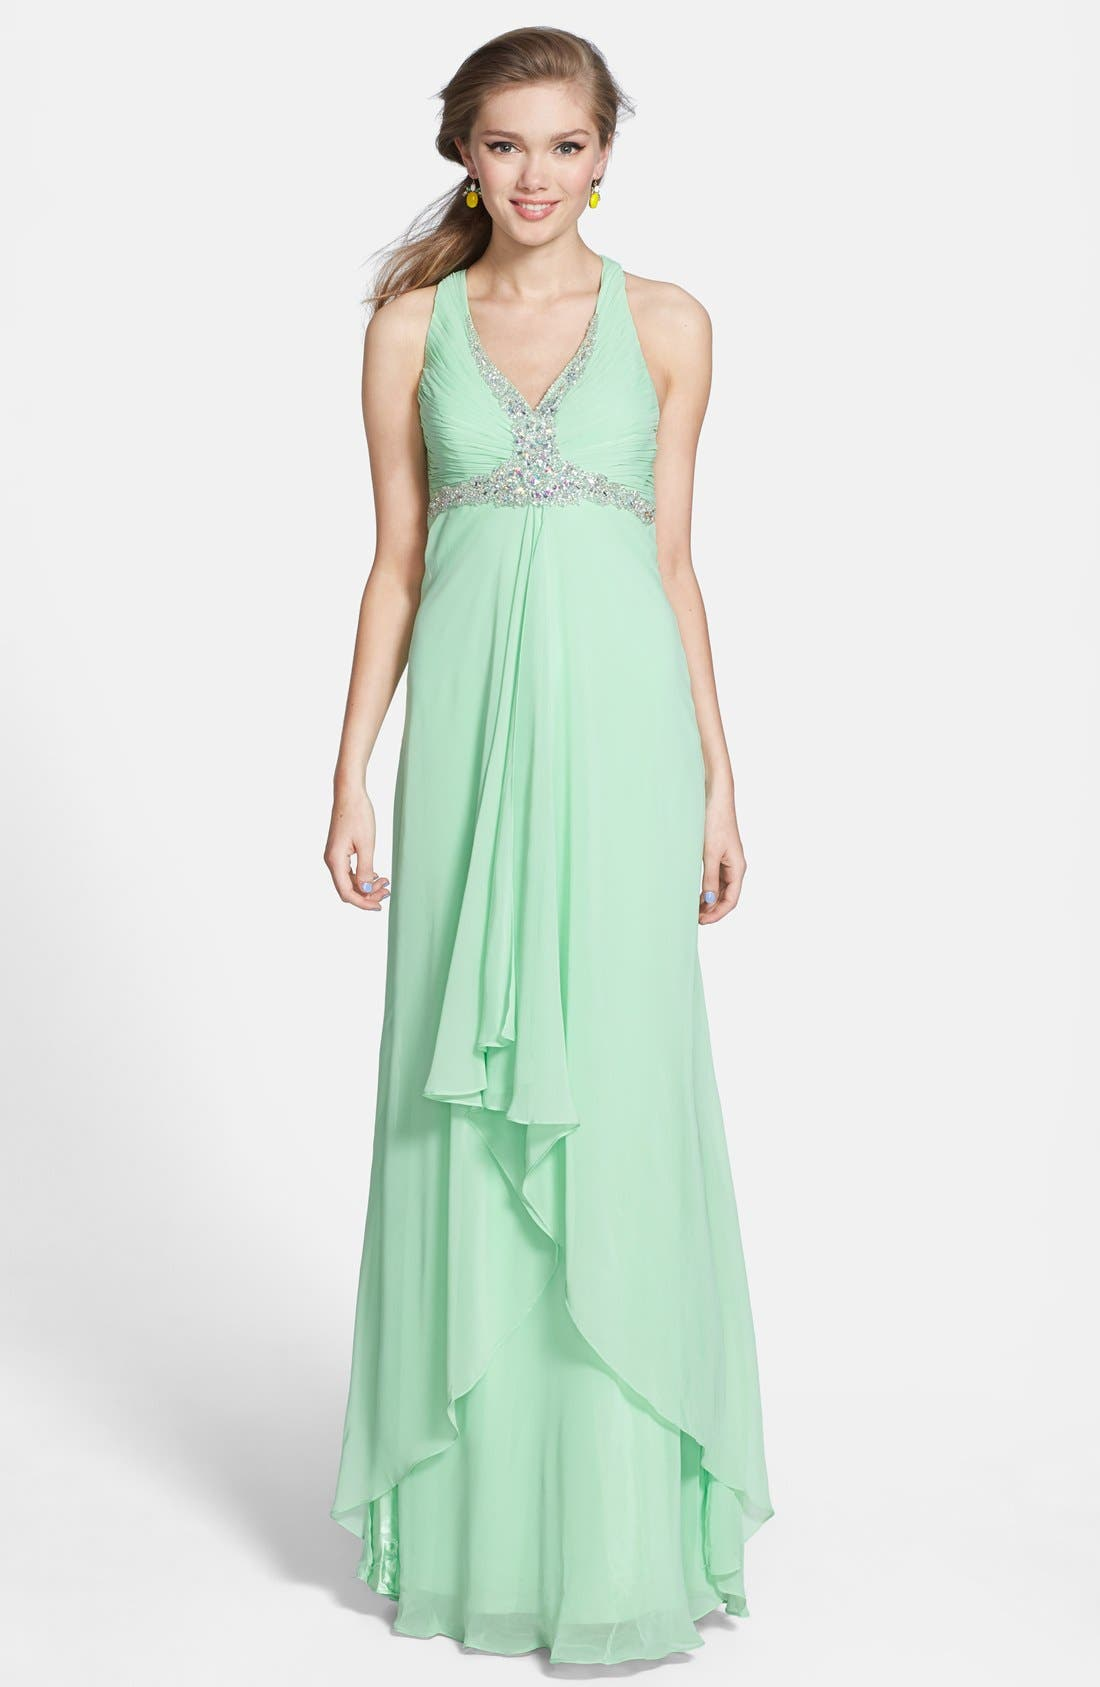 Alternate Image 1 Selected - Faviana Embellished Cross Back Chiffon Gown (Online Only)